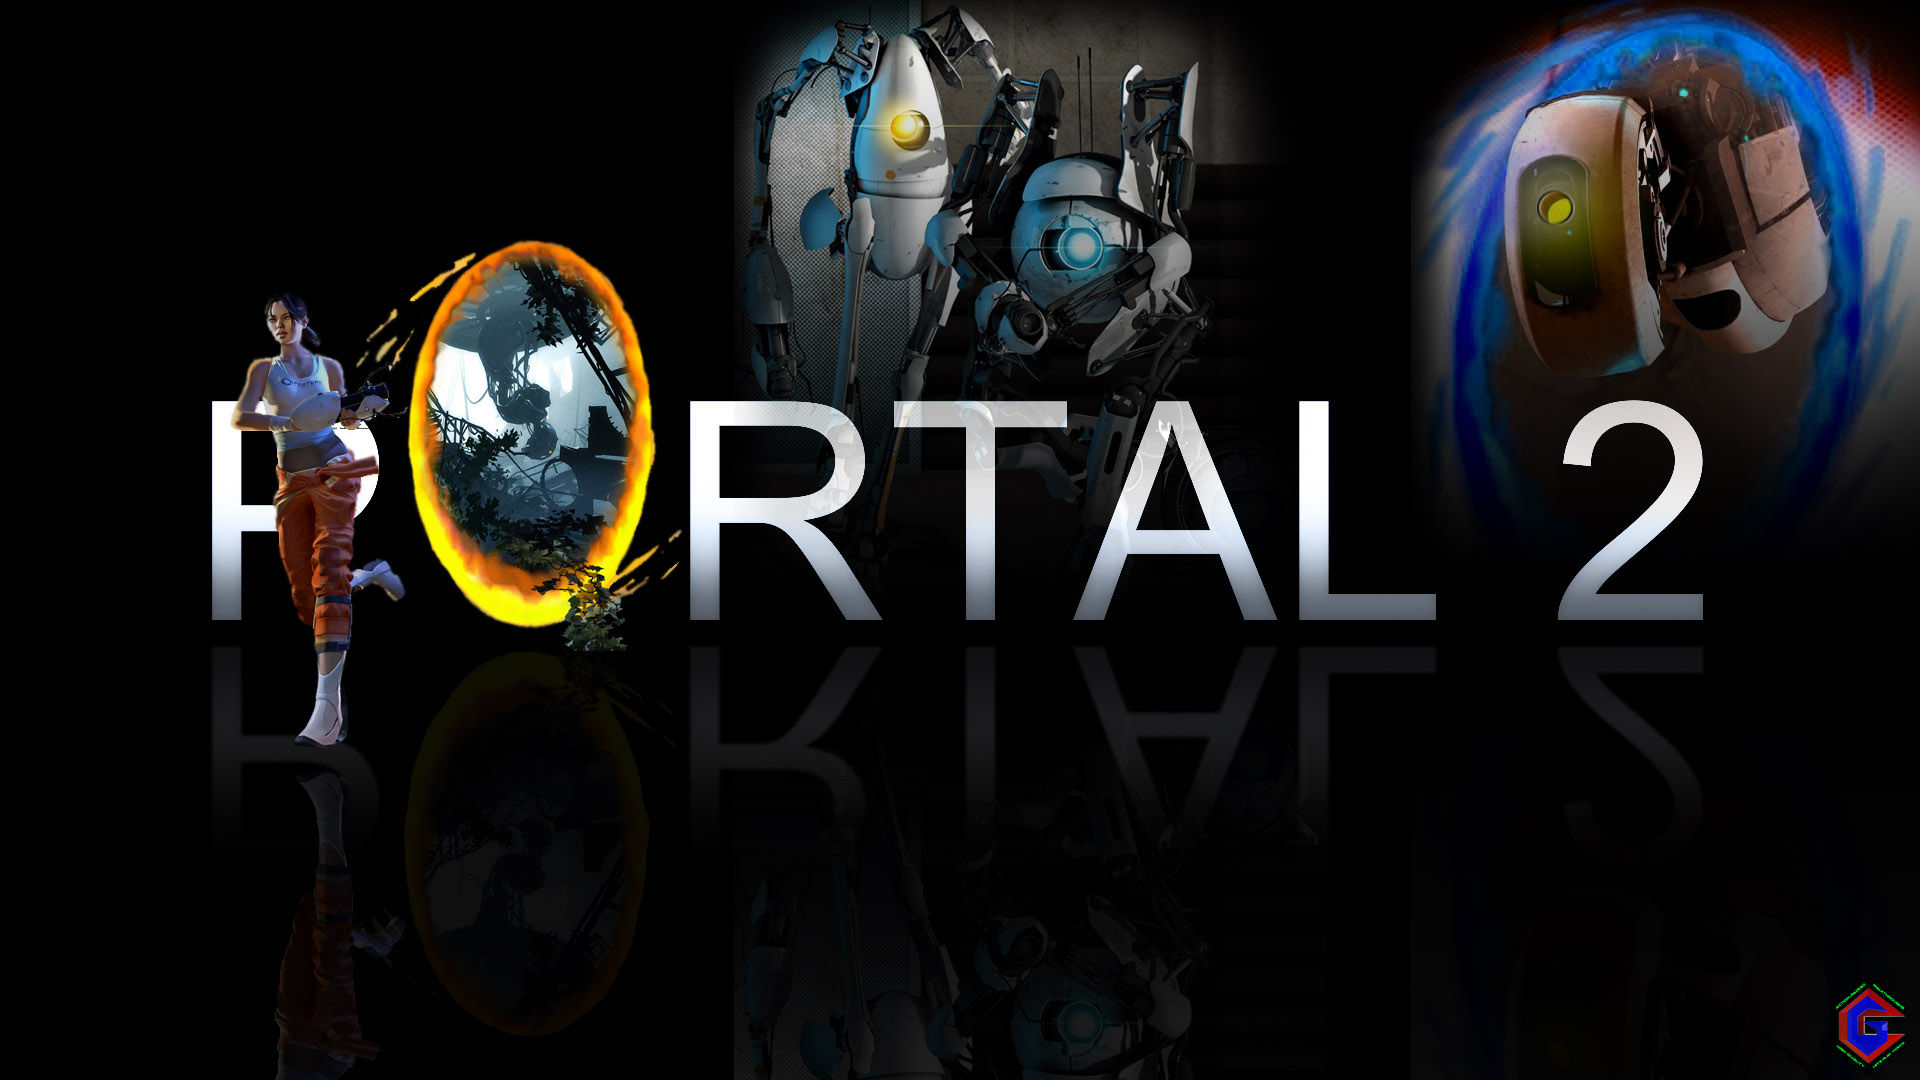 Portal 2 Exclusive Wallpaper